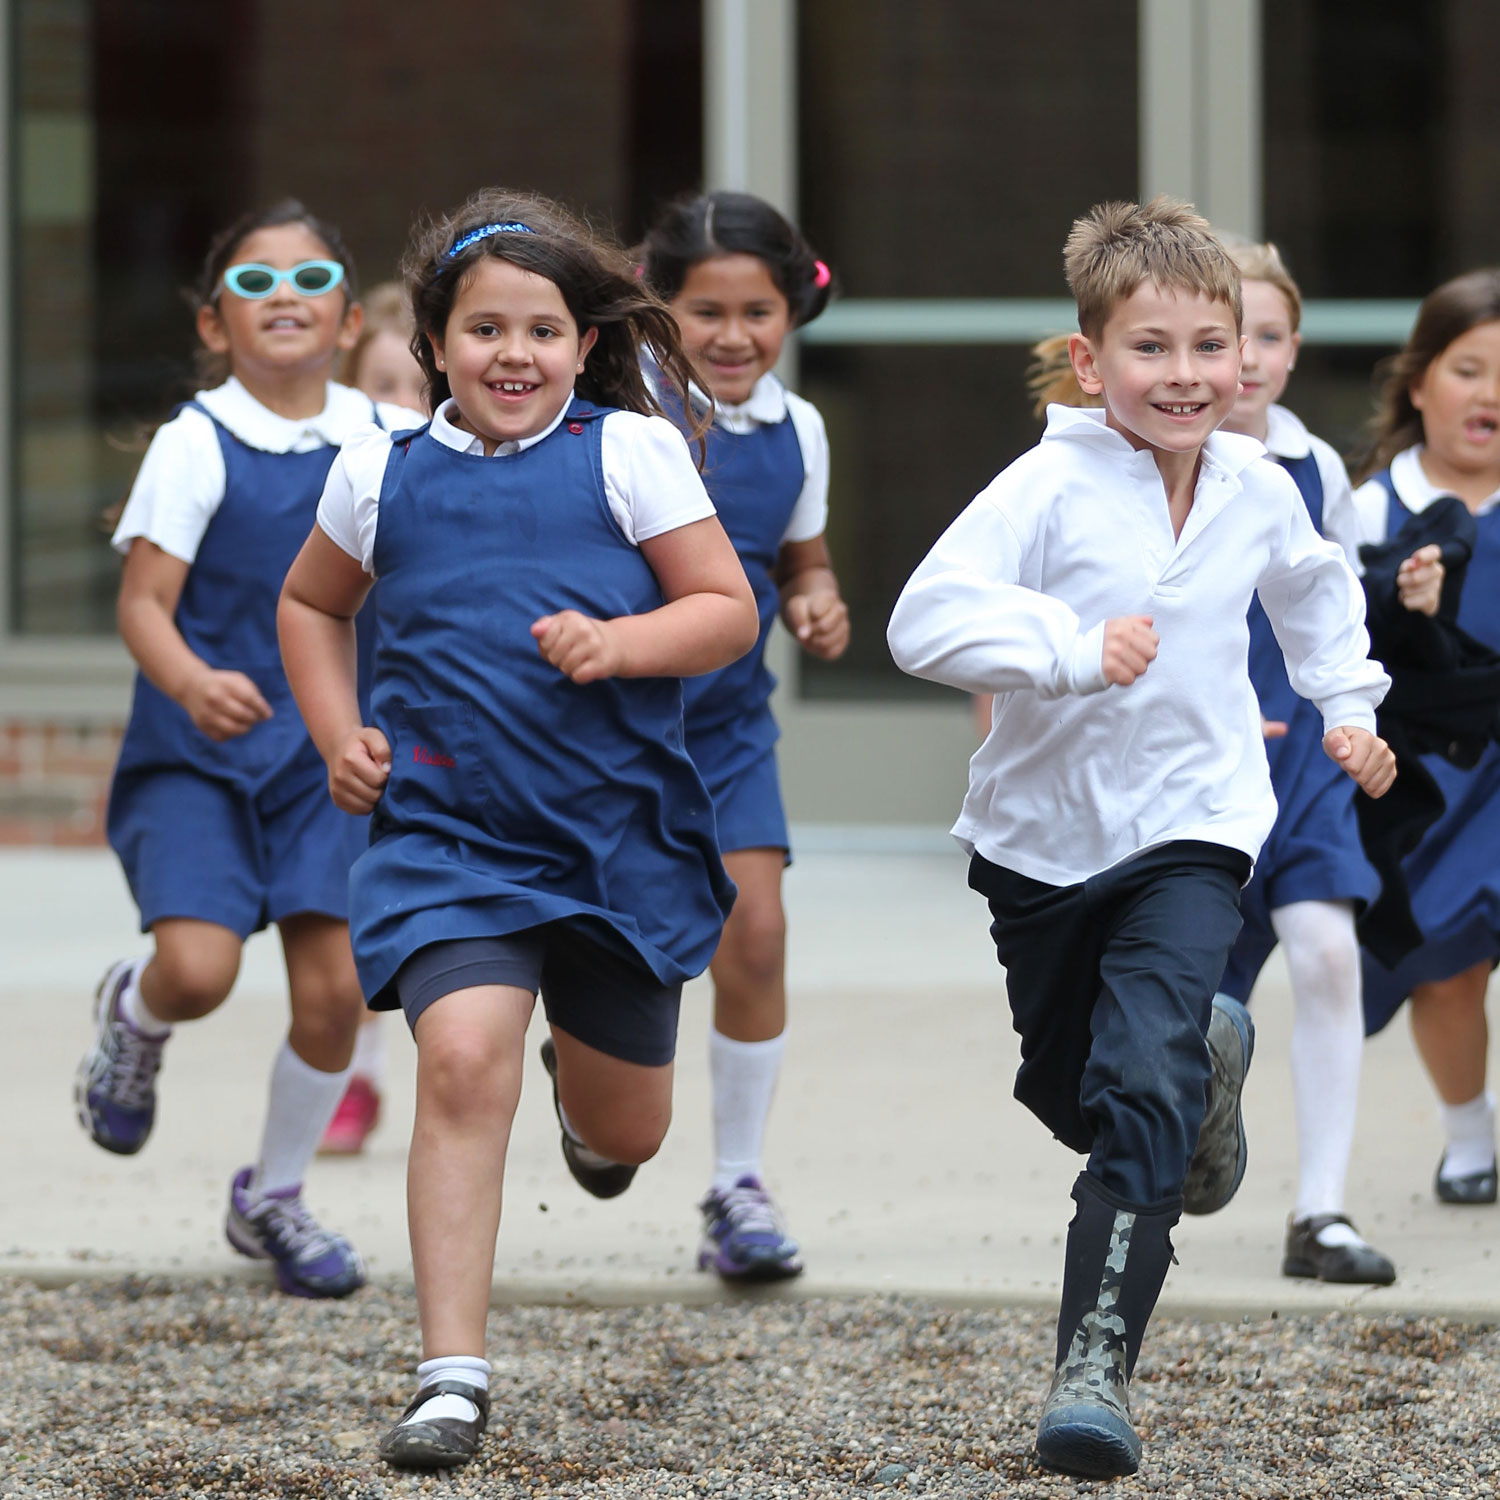 Lower School students running